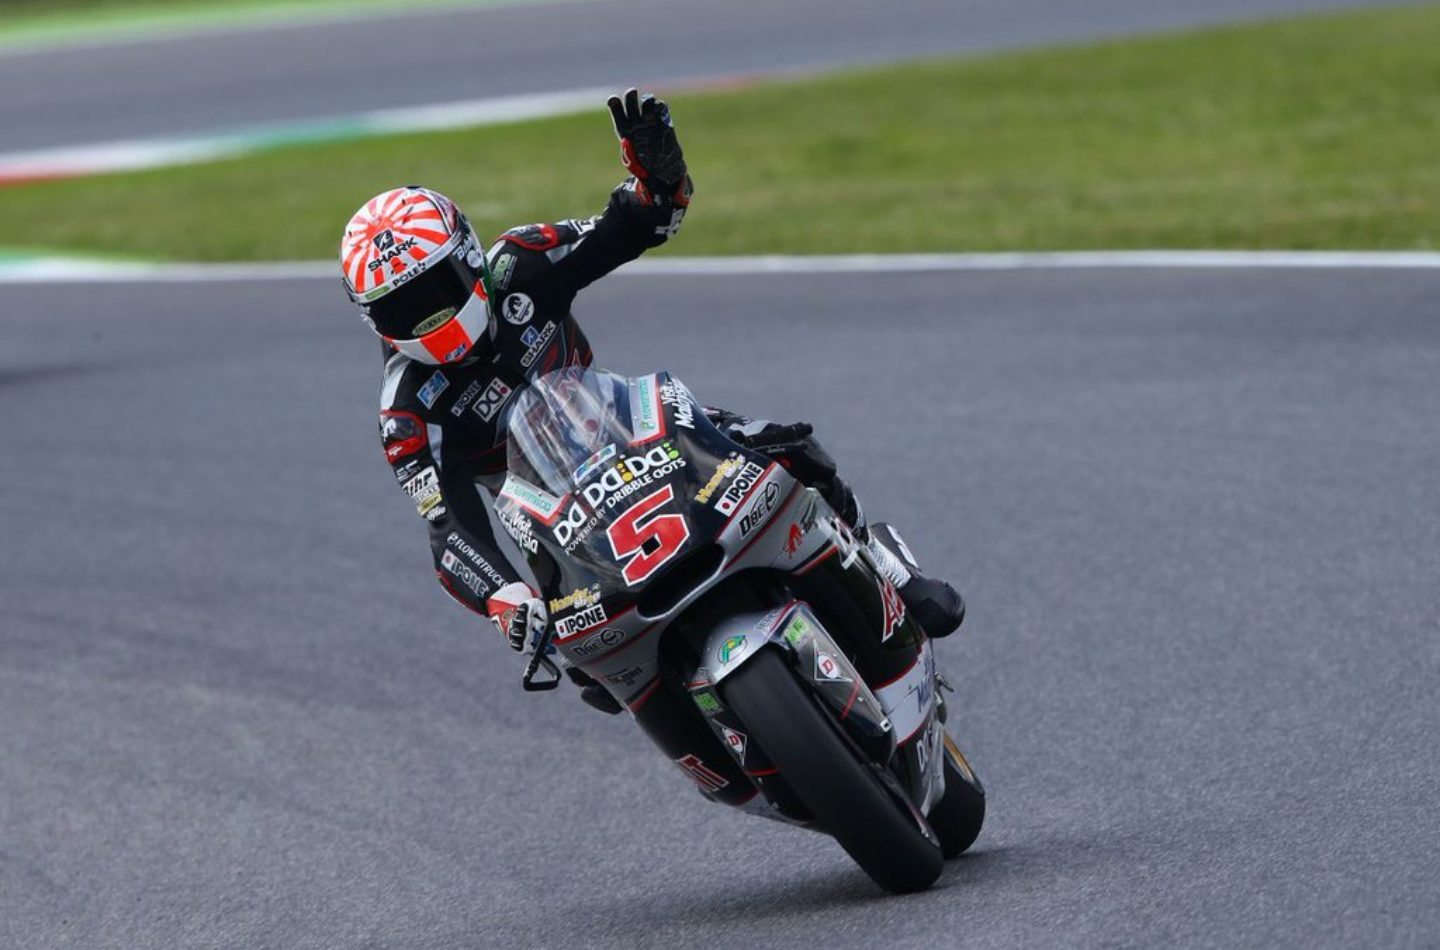 Moto2 | GP Catalunya, Zarco vince in solitaria